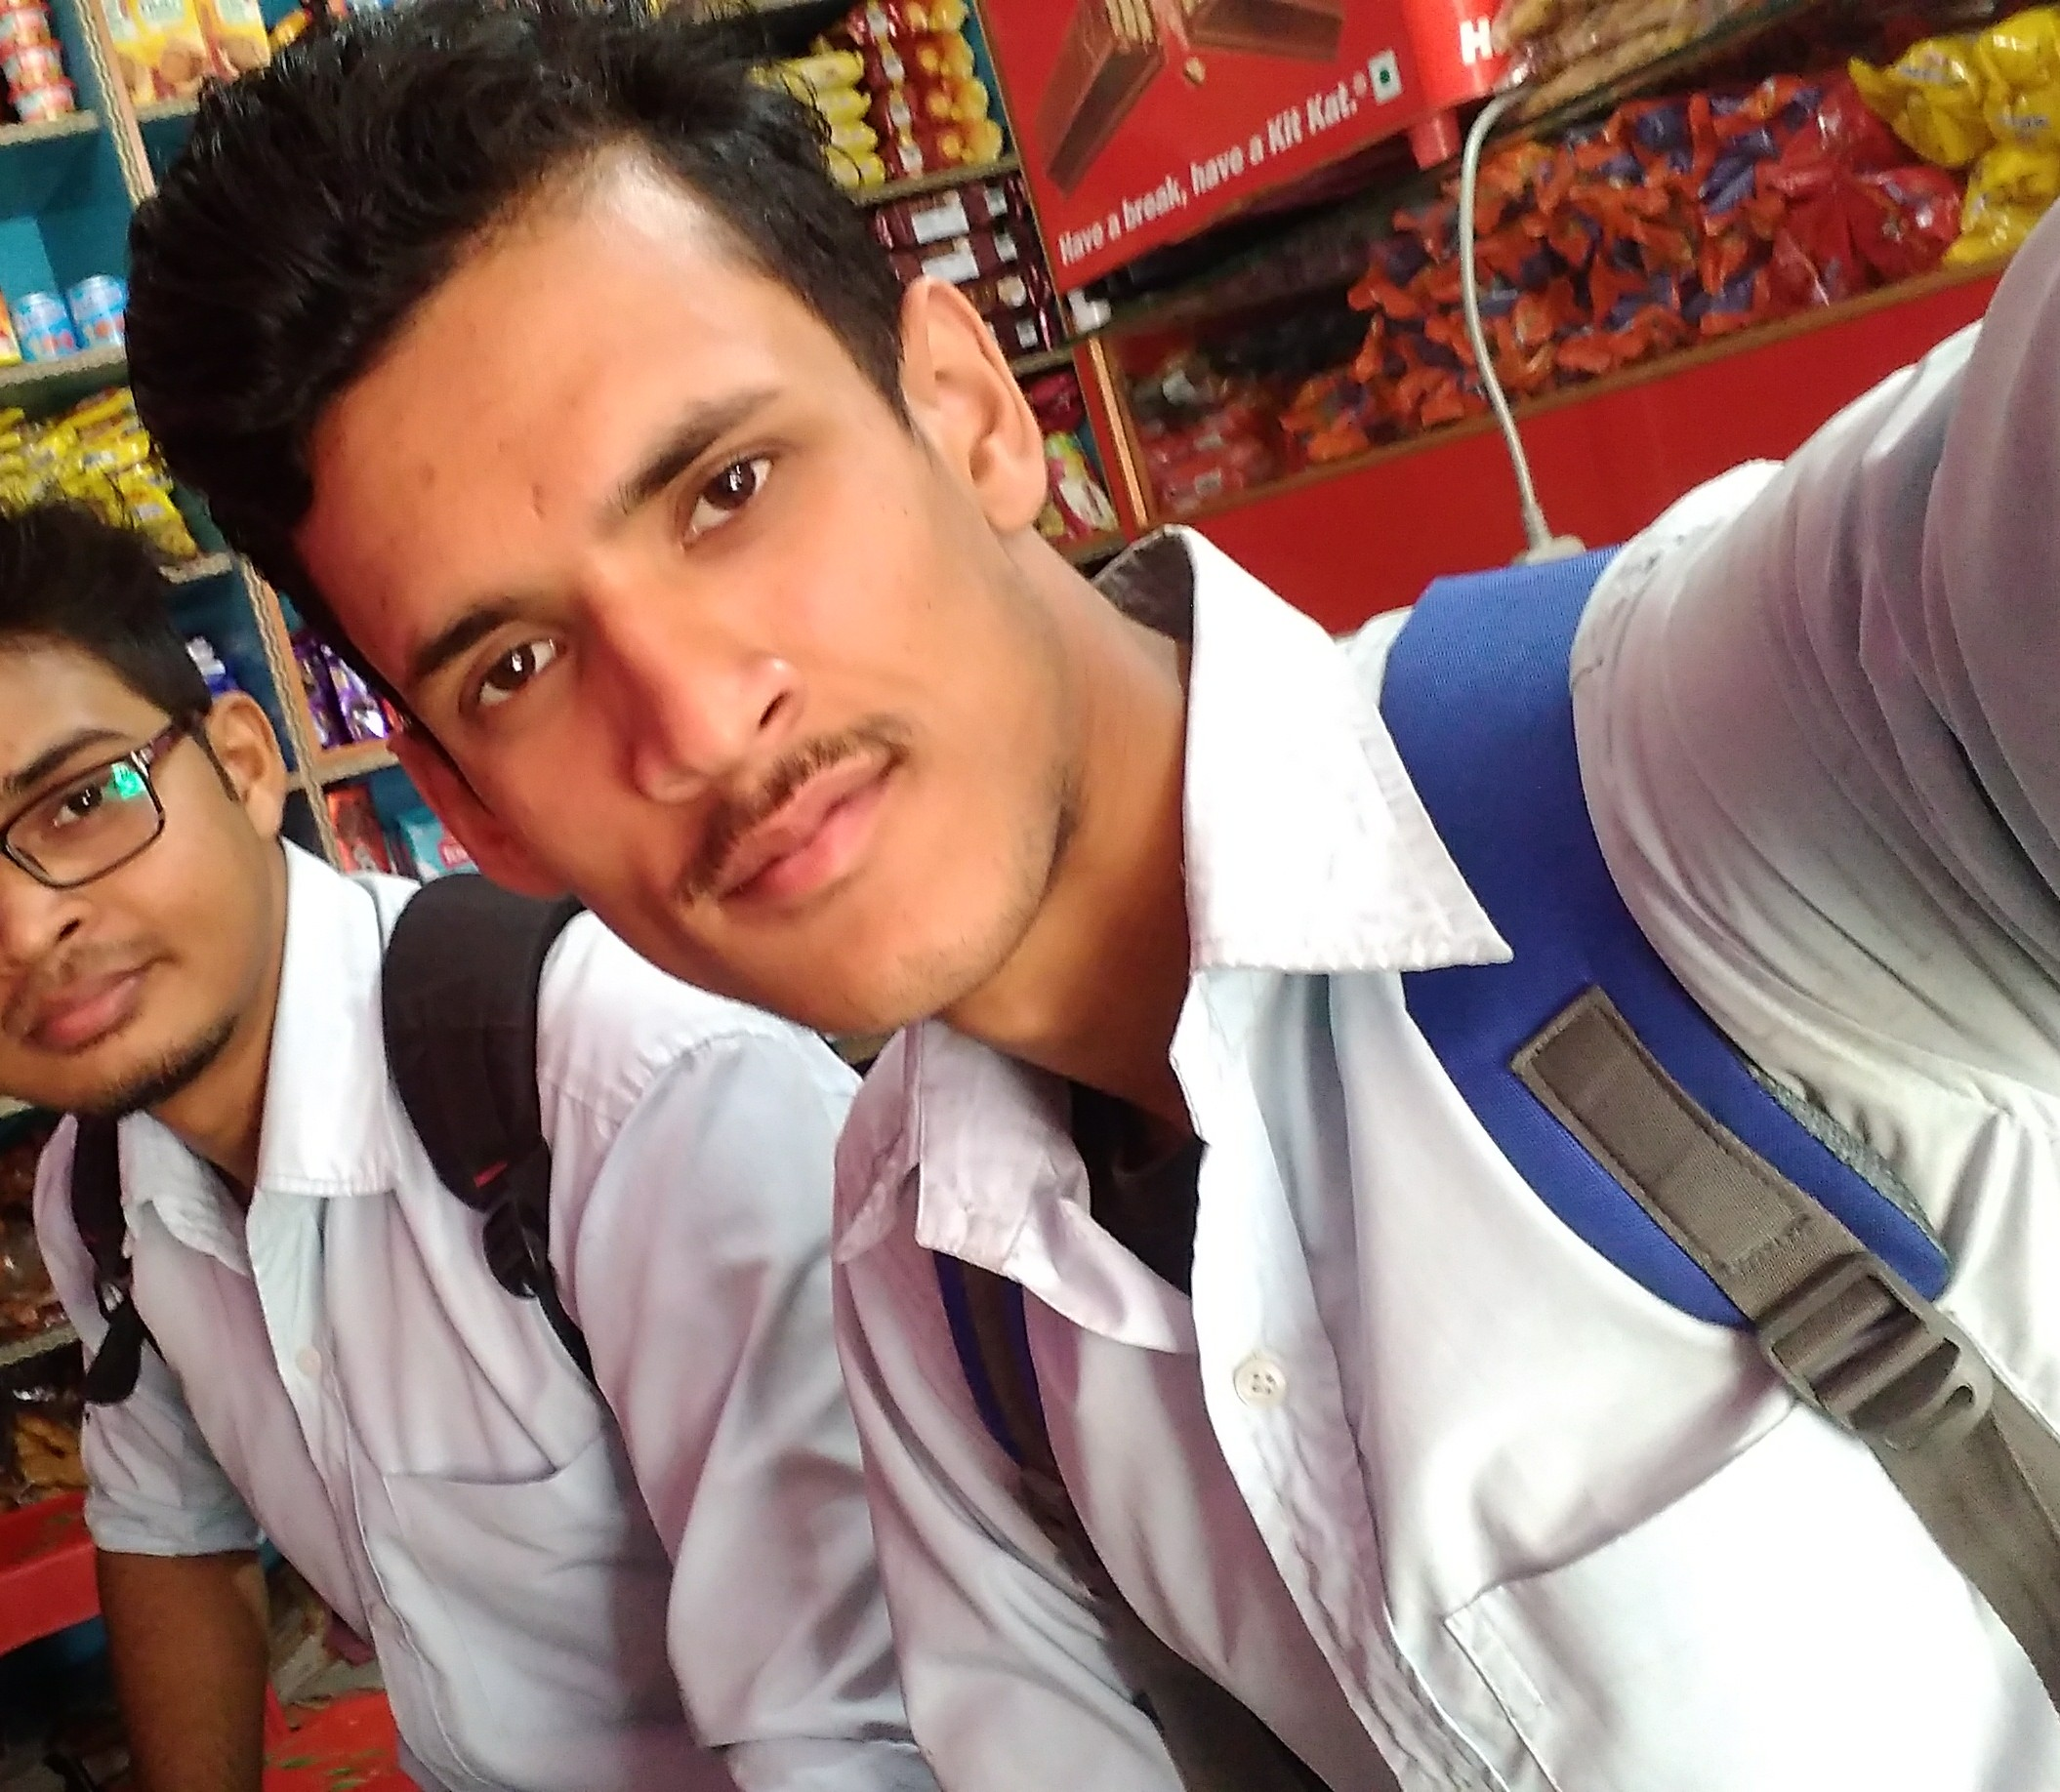 Biswajit and siddharth from pkc